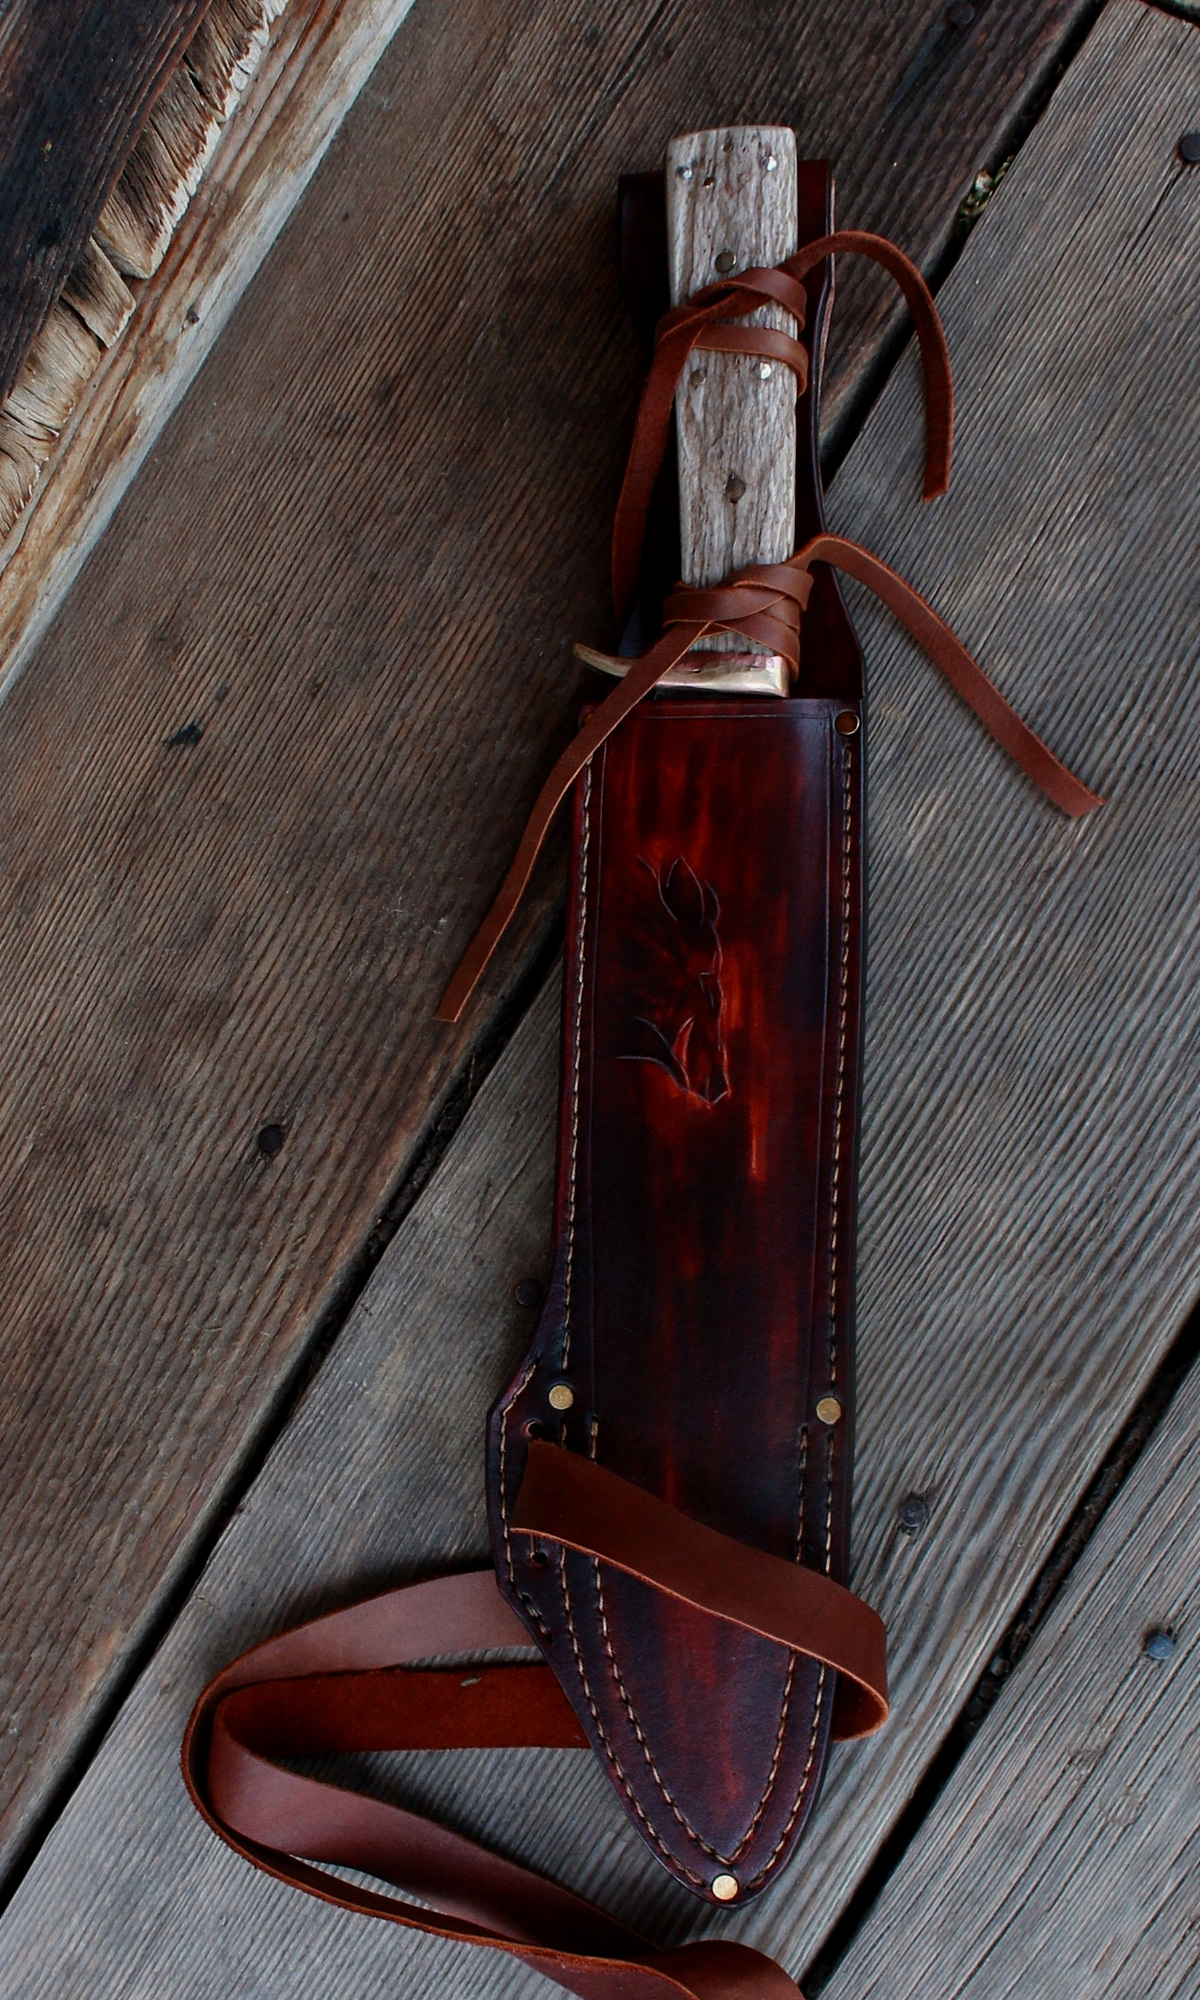 A hand forged 10 inch edge Boar survival knife with leather tie security. We double stitch all of our bush craft and survival sheaths now.